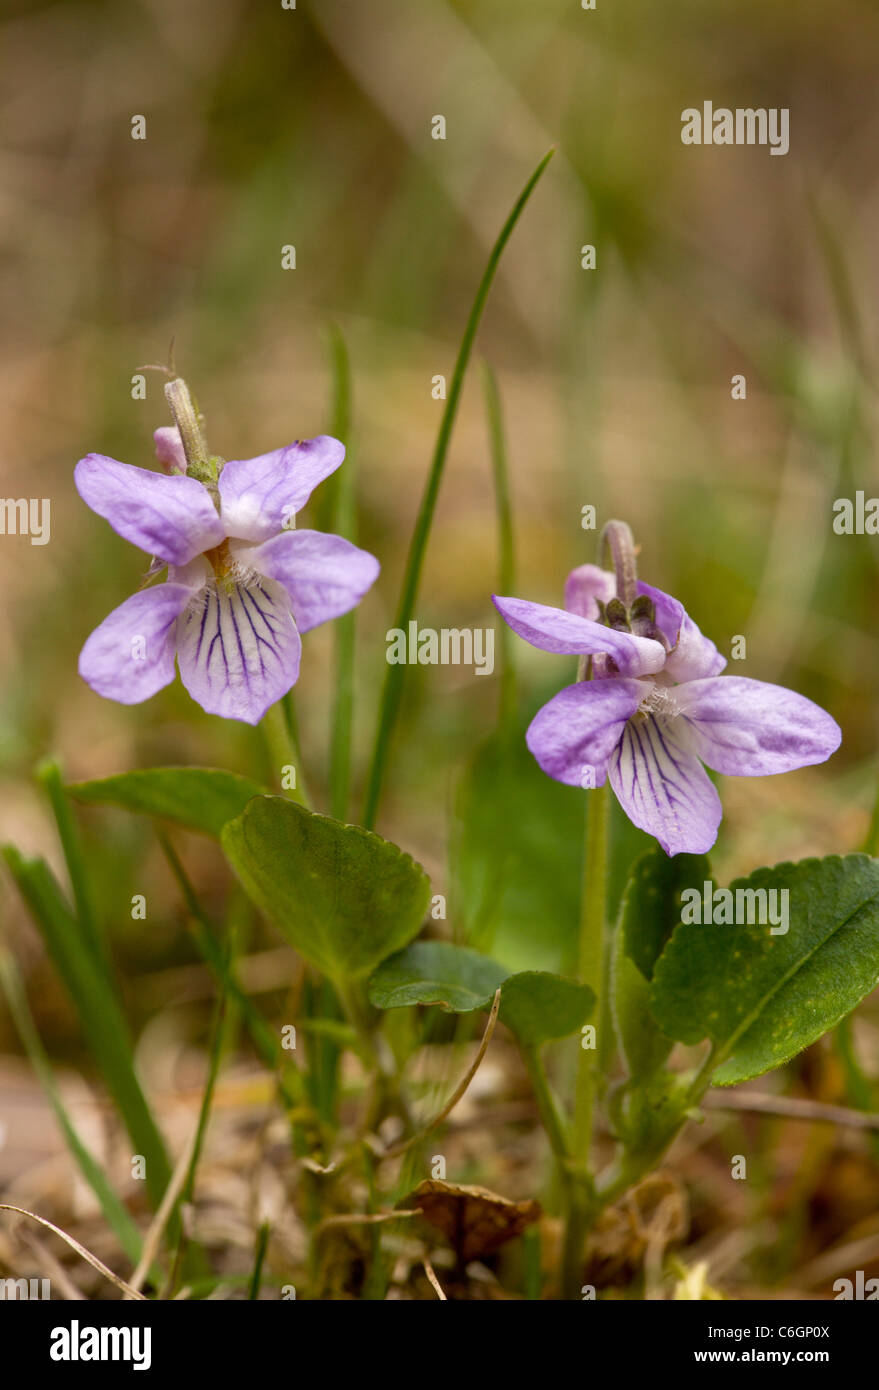 Teesdale Violet, Viola rupestris. Very rare in UK, Teesdale area only. - Stock Image